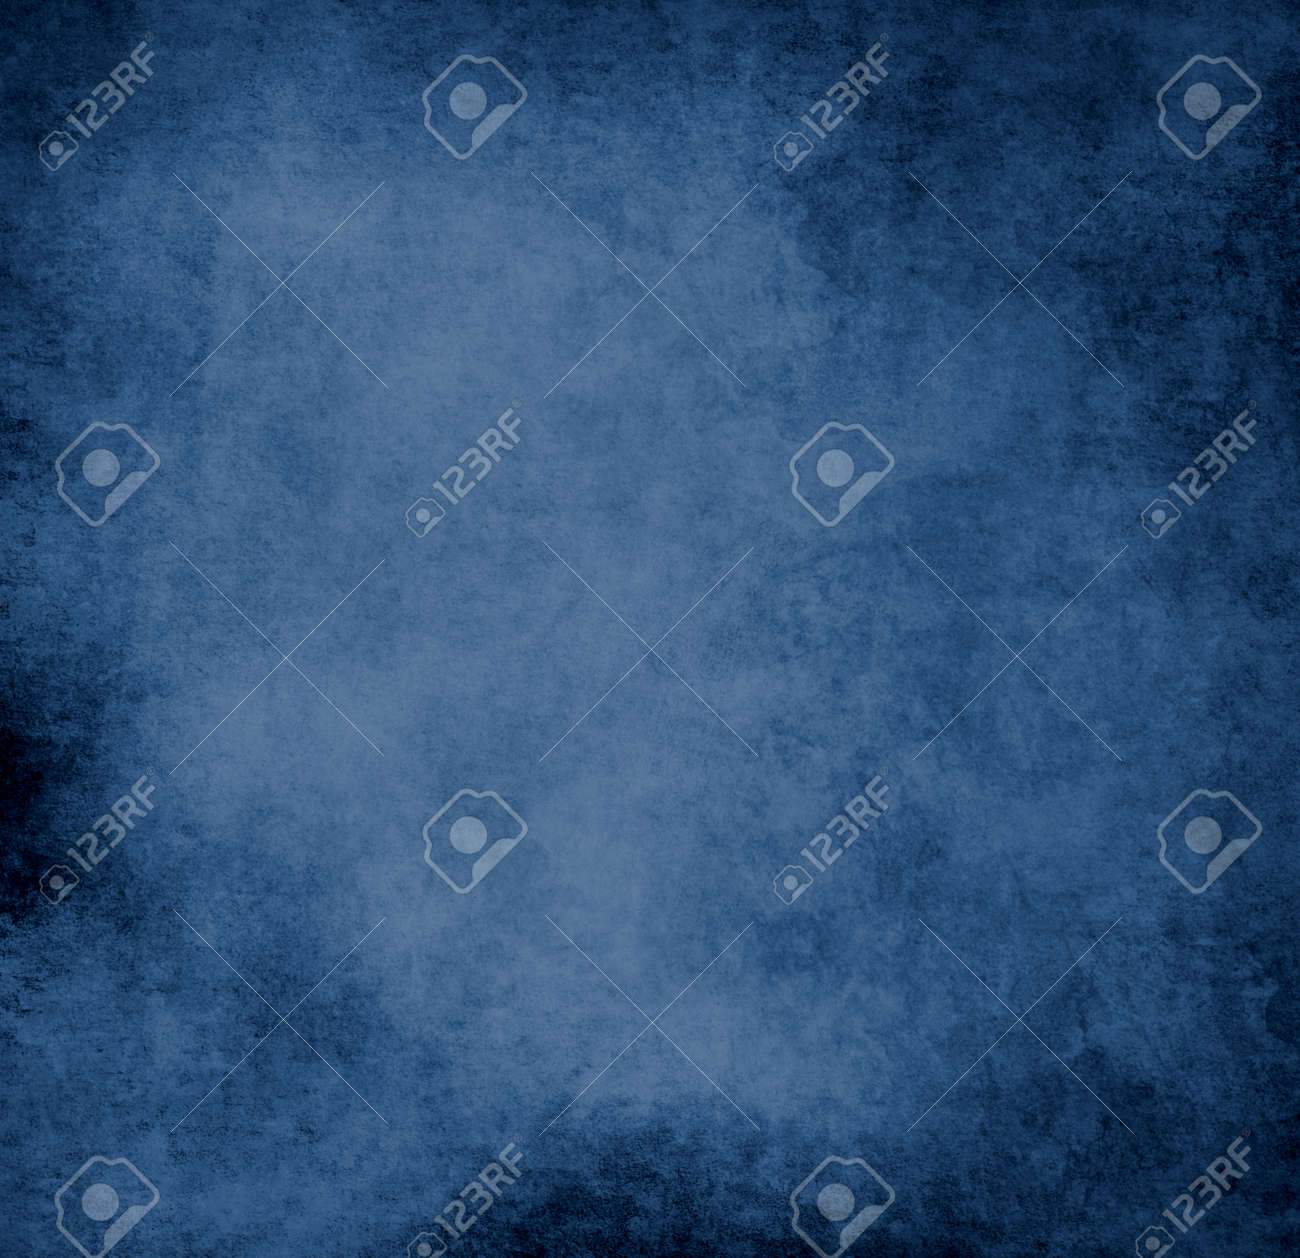 abstract texture background design layout - 32343690